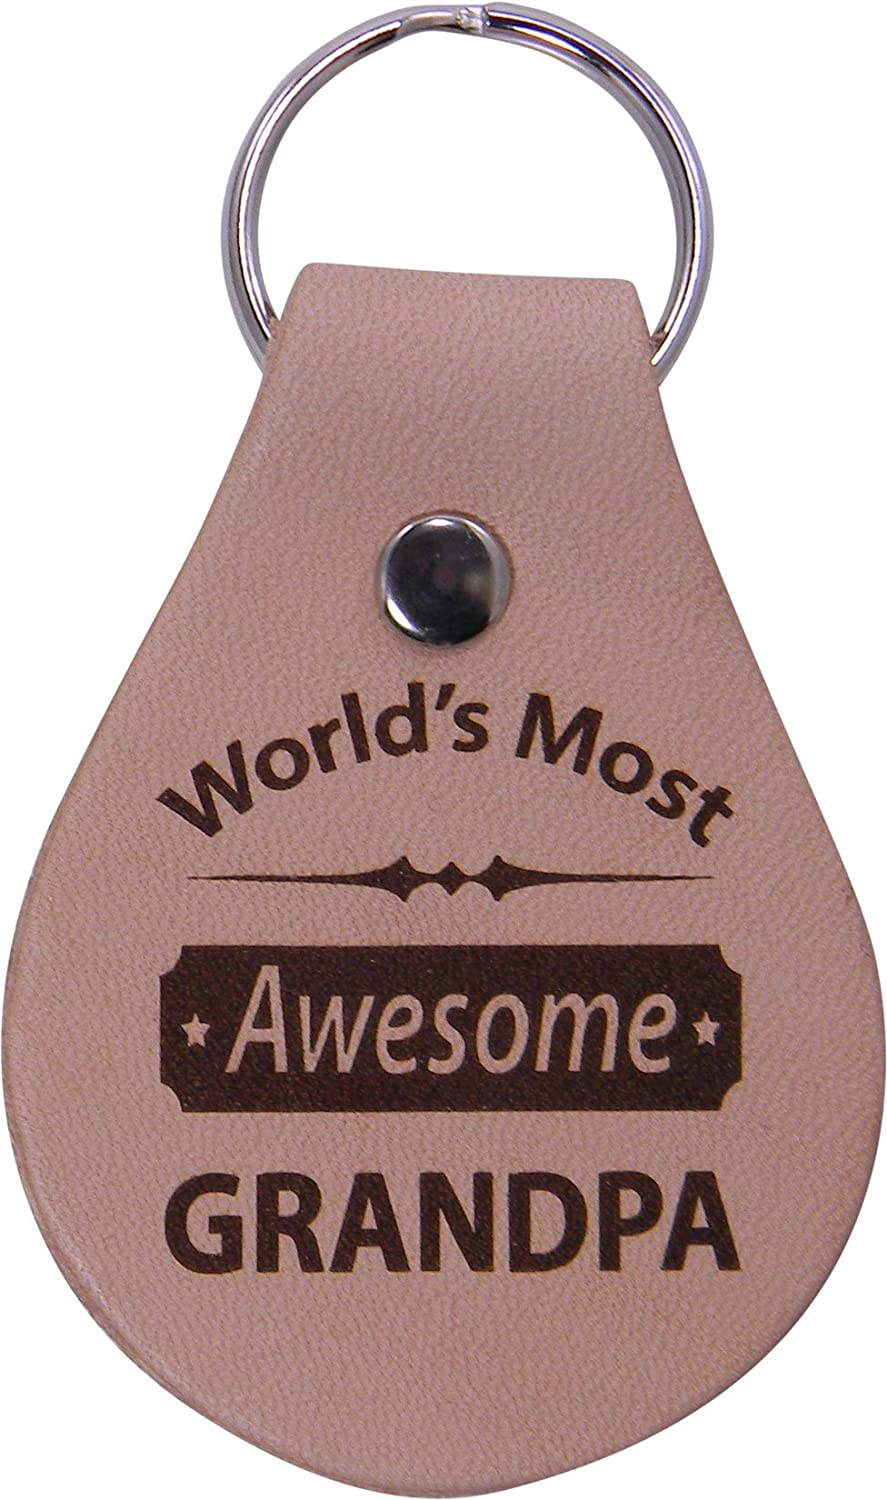 Grandfather Grandpa Birthday Worlds Best Dad Leather Key Chain or for Dad Husband CustomGiftsNow Papa Great Gift for Fathers Day